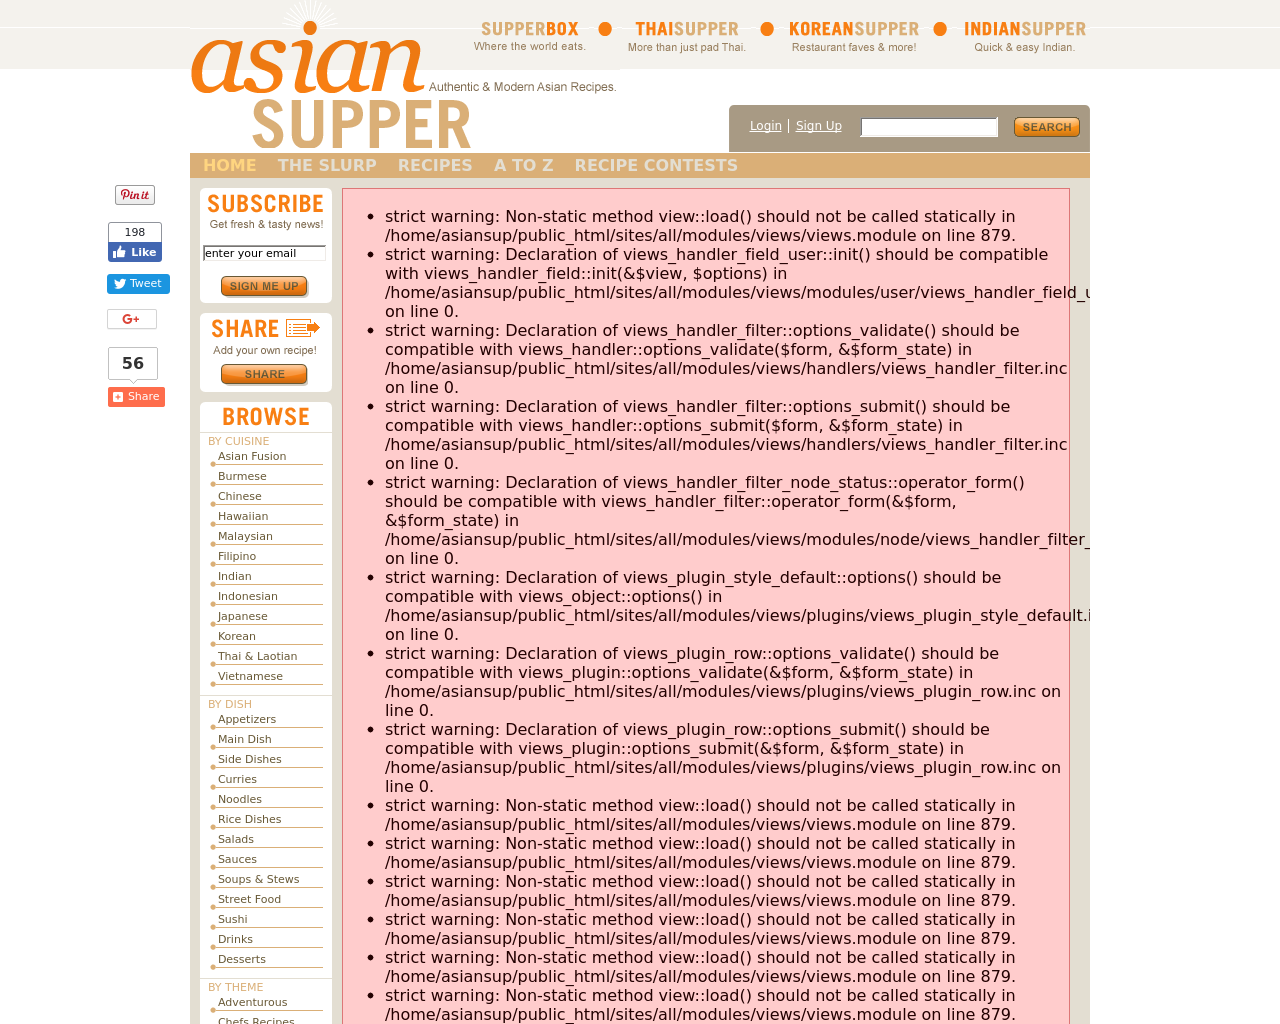 Asian-SUPPER-Authentic-&-Modern-Asian-Recipes.-Advertising-Reviews-Pricing